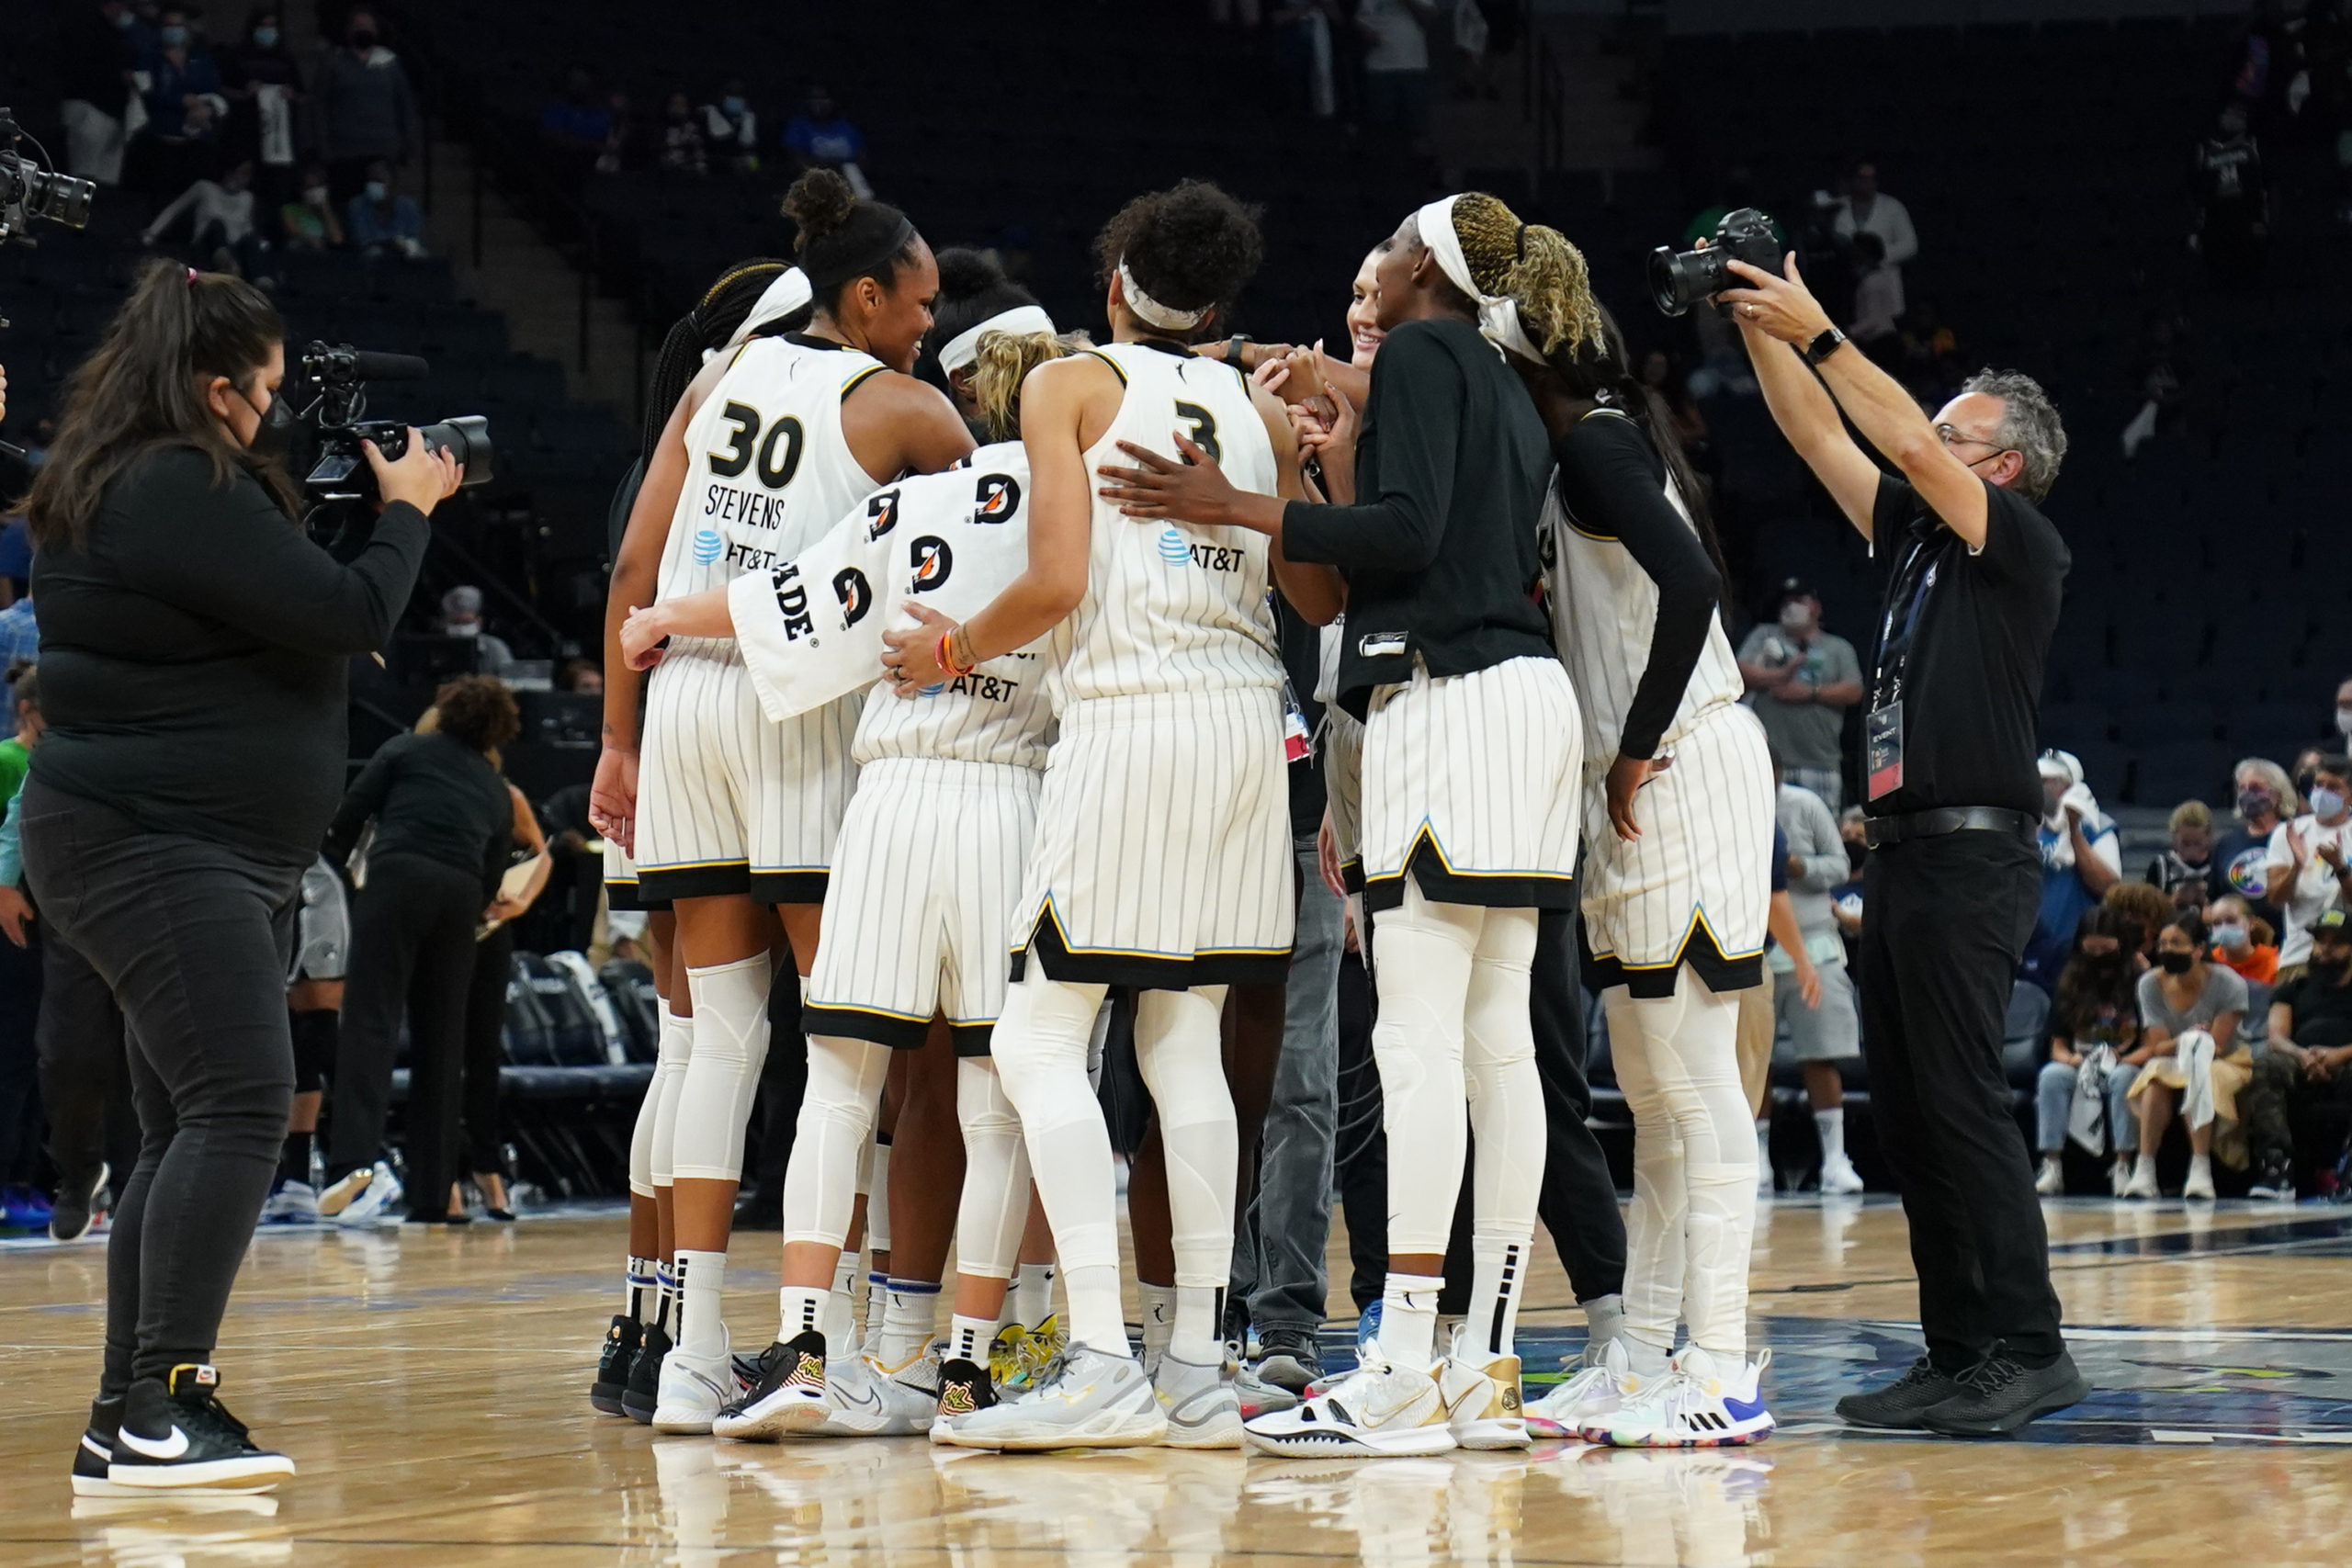 Minnesota falls in the second round of playoffs as Chicago outperforms the Lynx 89-76 to secure a semifinals spot